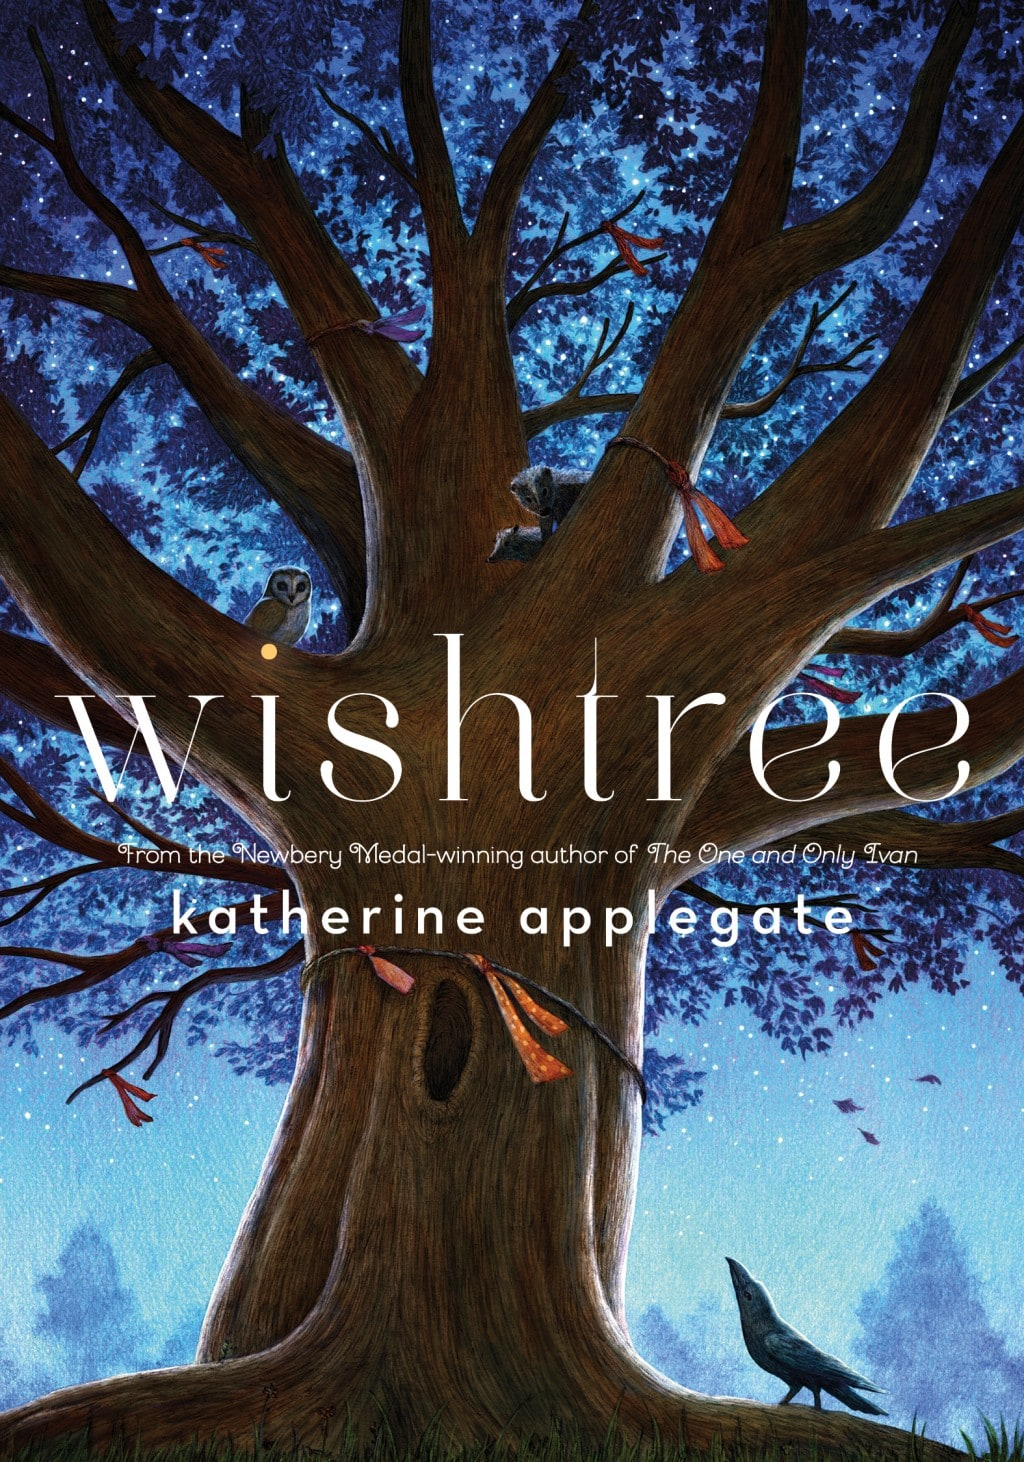 Wishtree, by Katherine Applegate